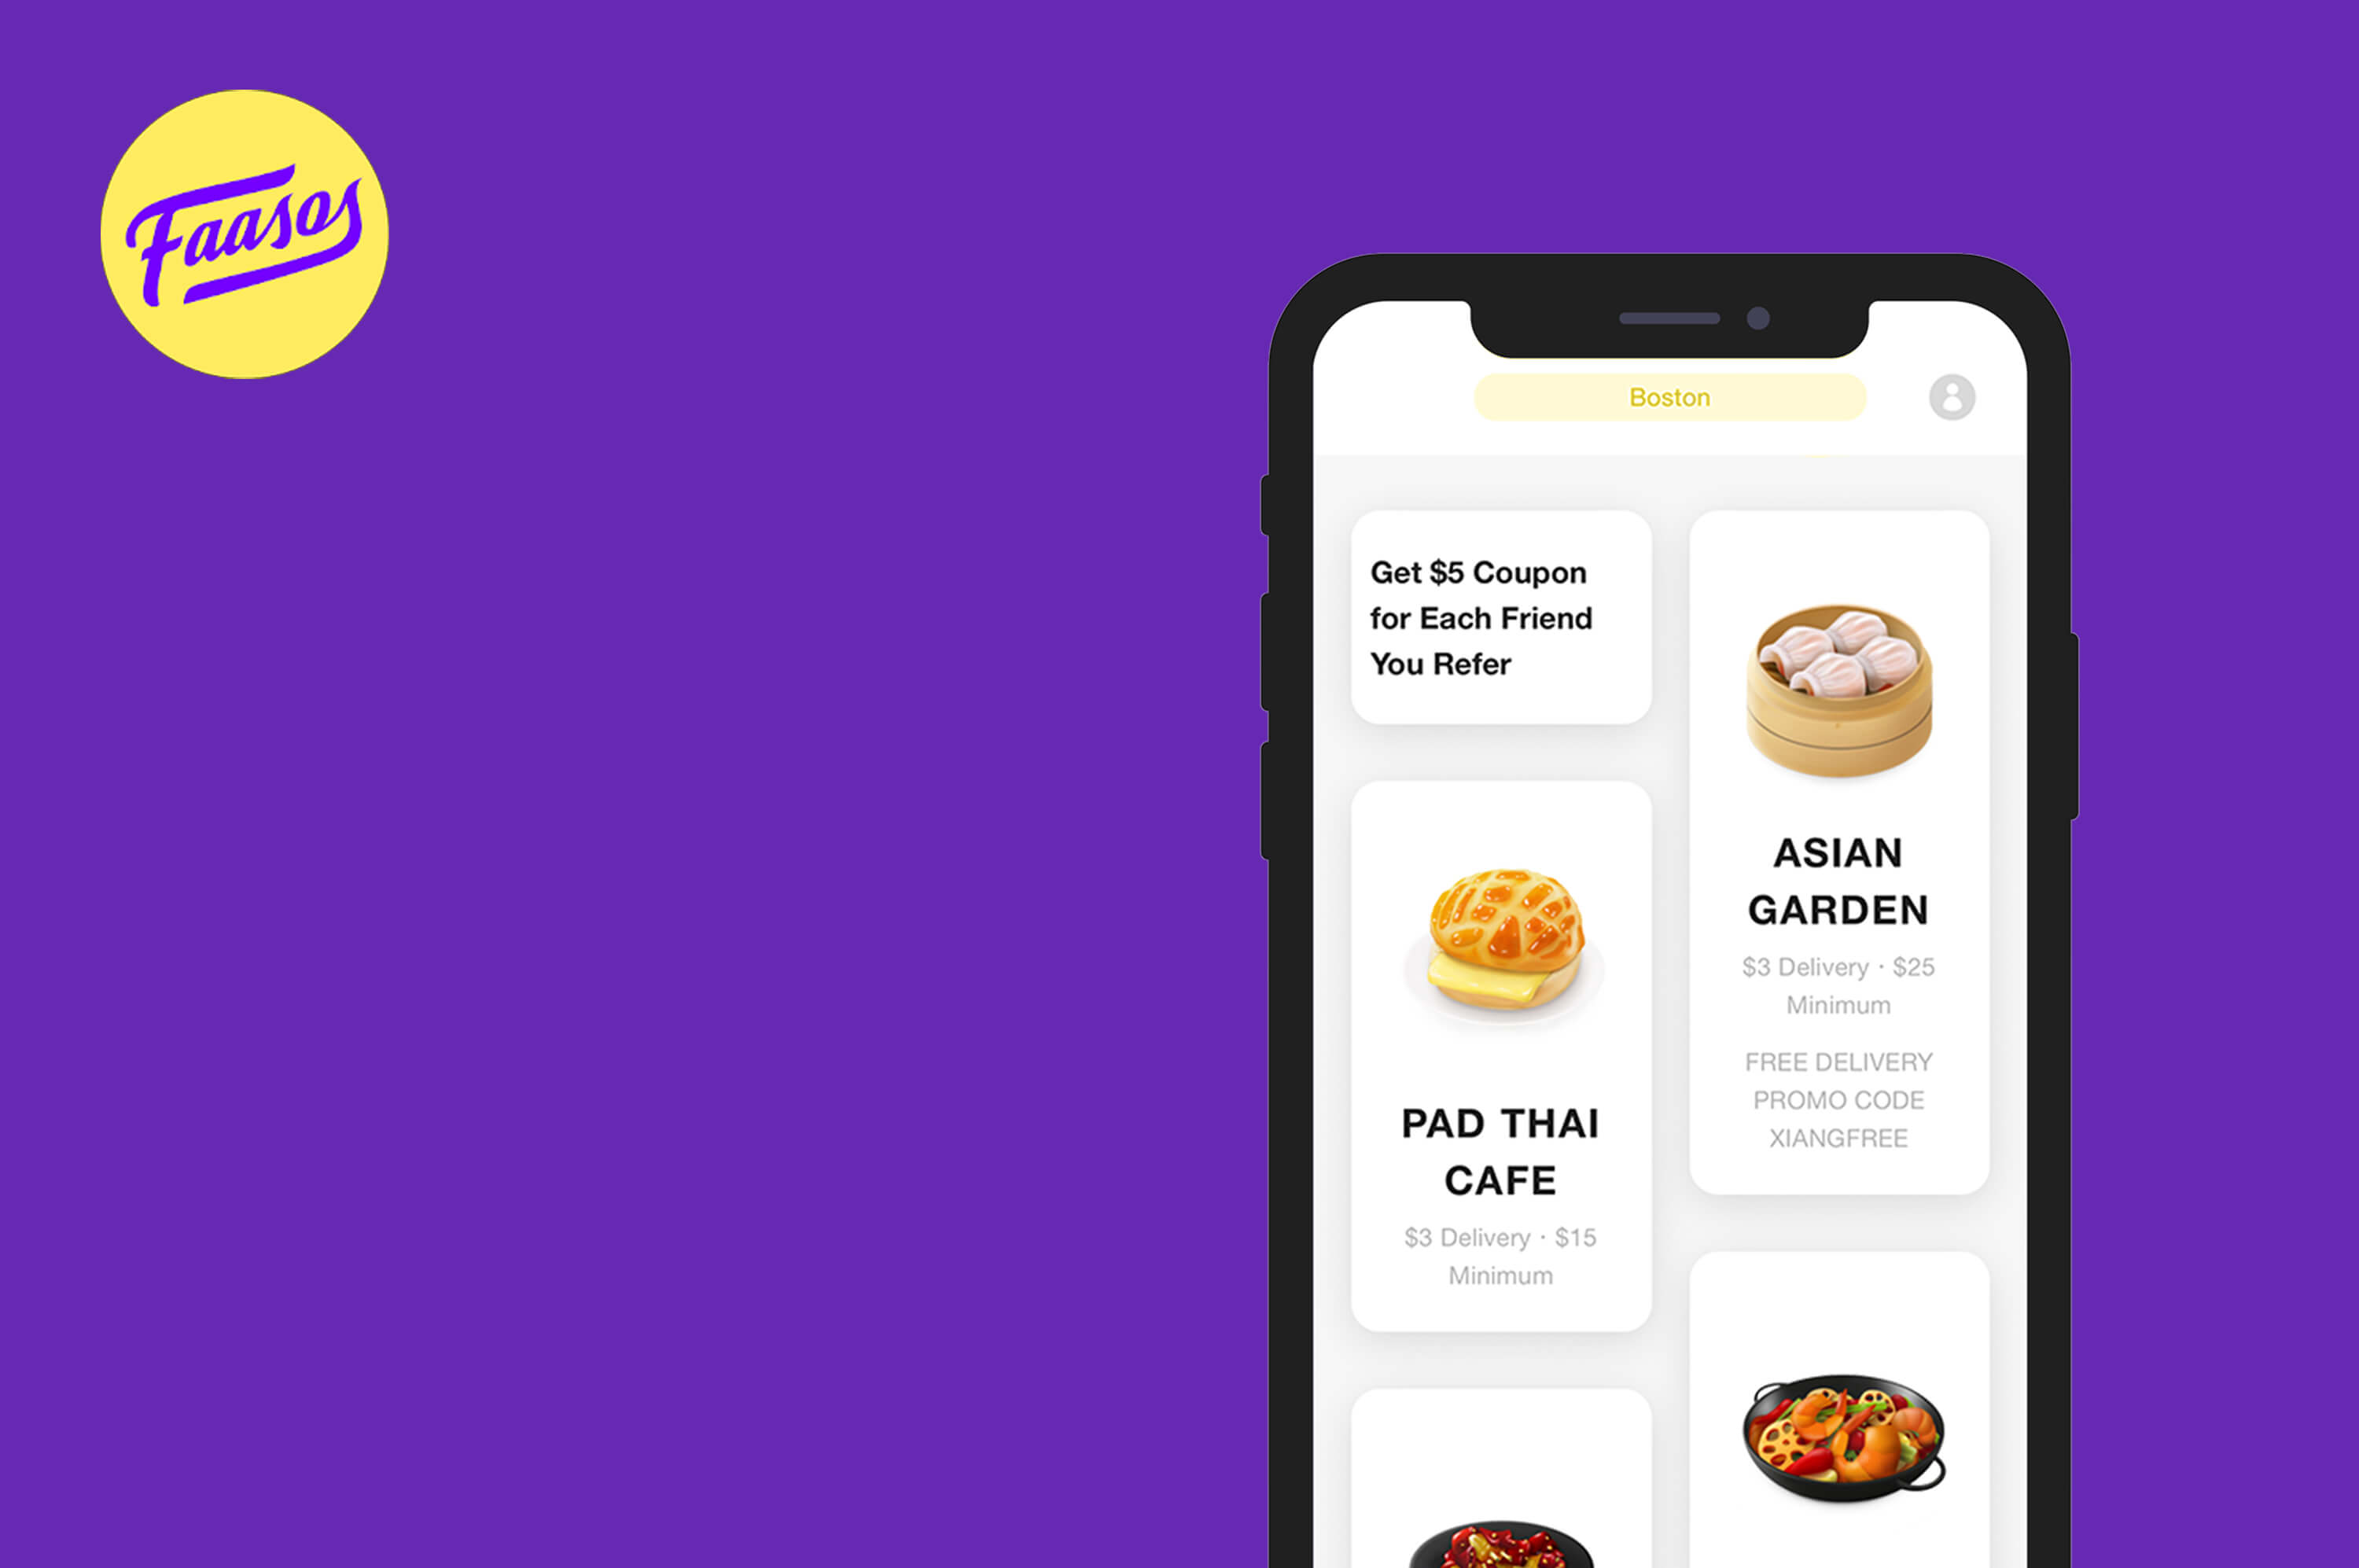 a smartphone which is opened faasos app on the screen